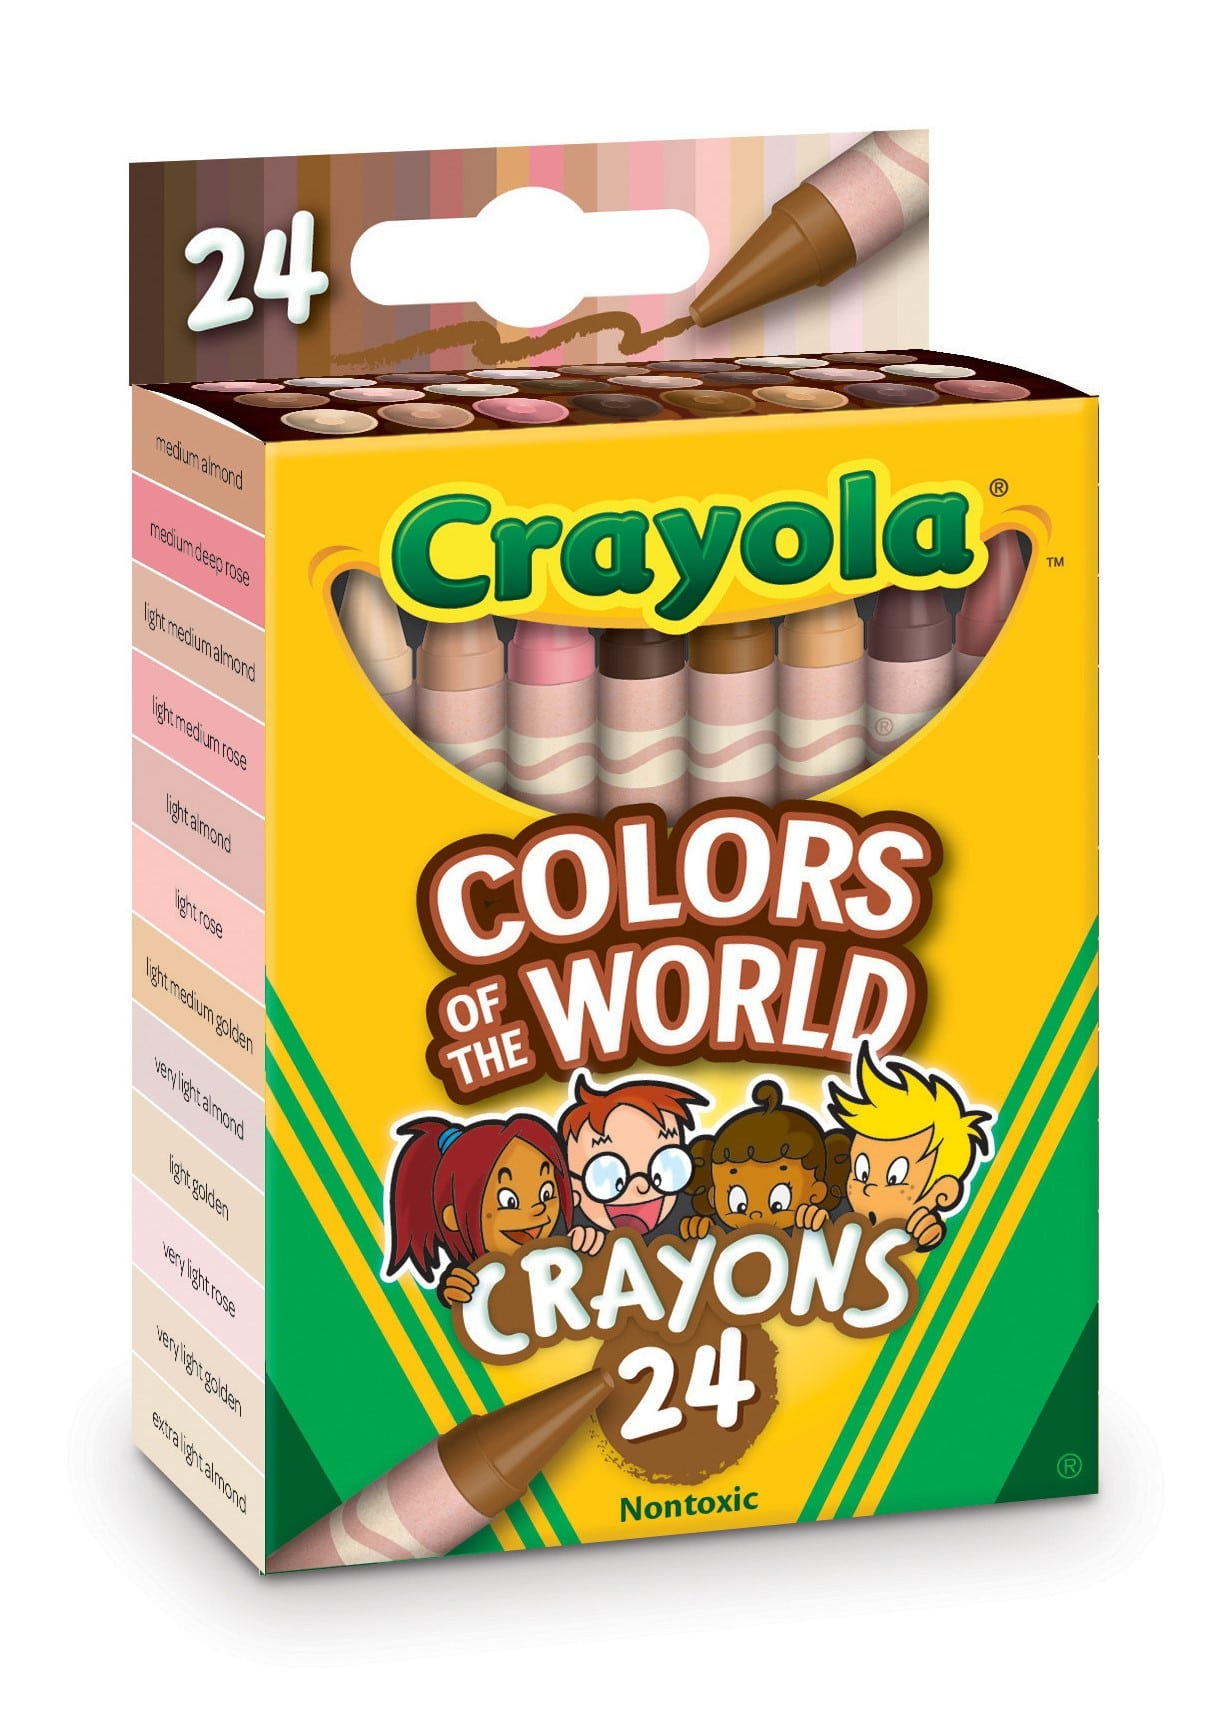 Crayola's Colors of the World crayons represent over 40 skin tones across the globe 14